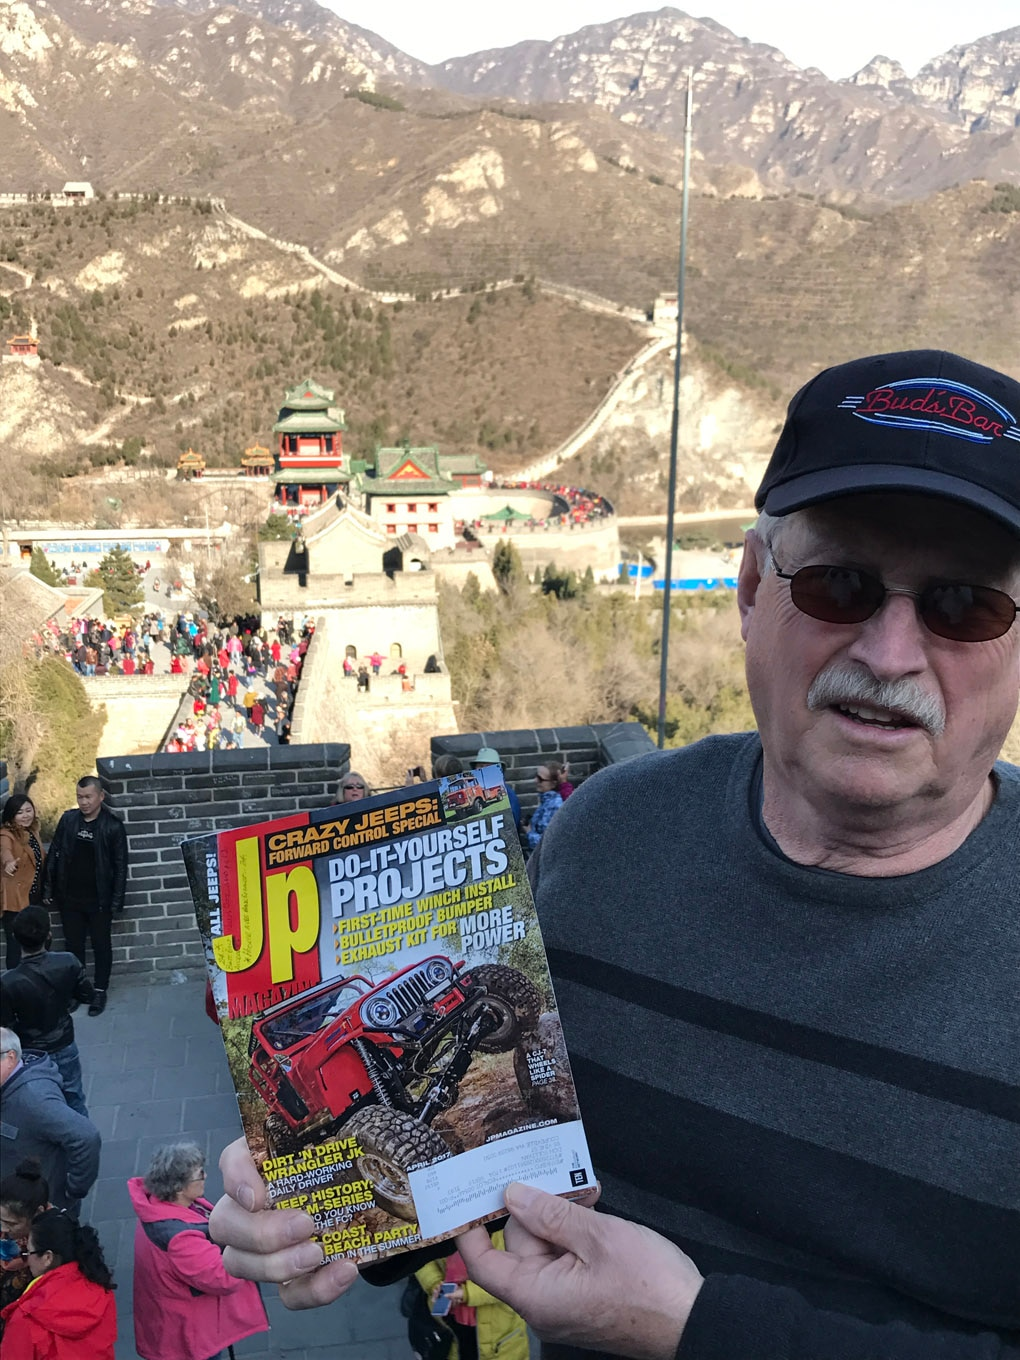 auto news jp jeep jpmagazine where do you read on location 1709